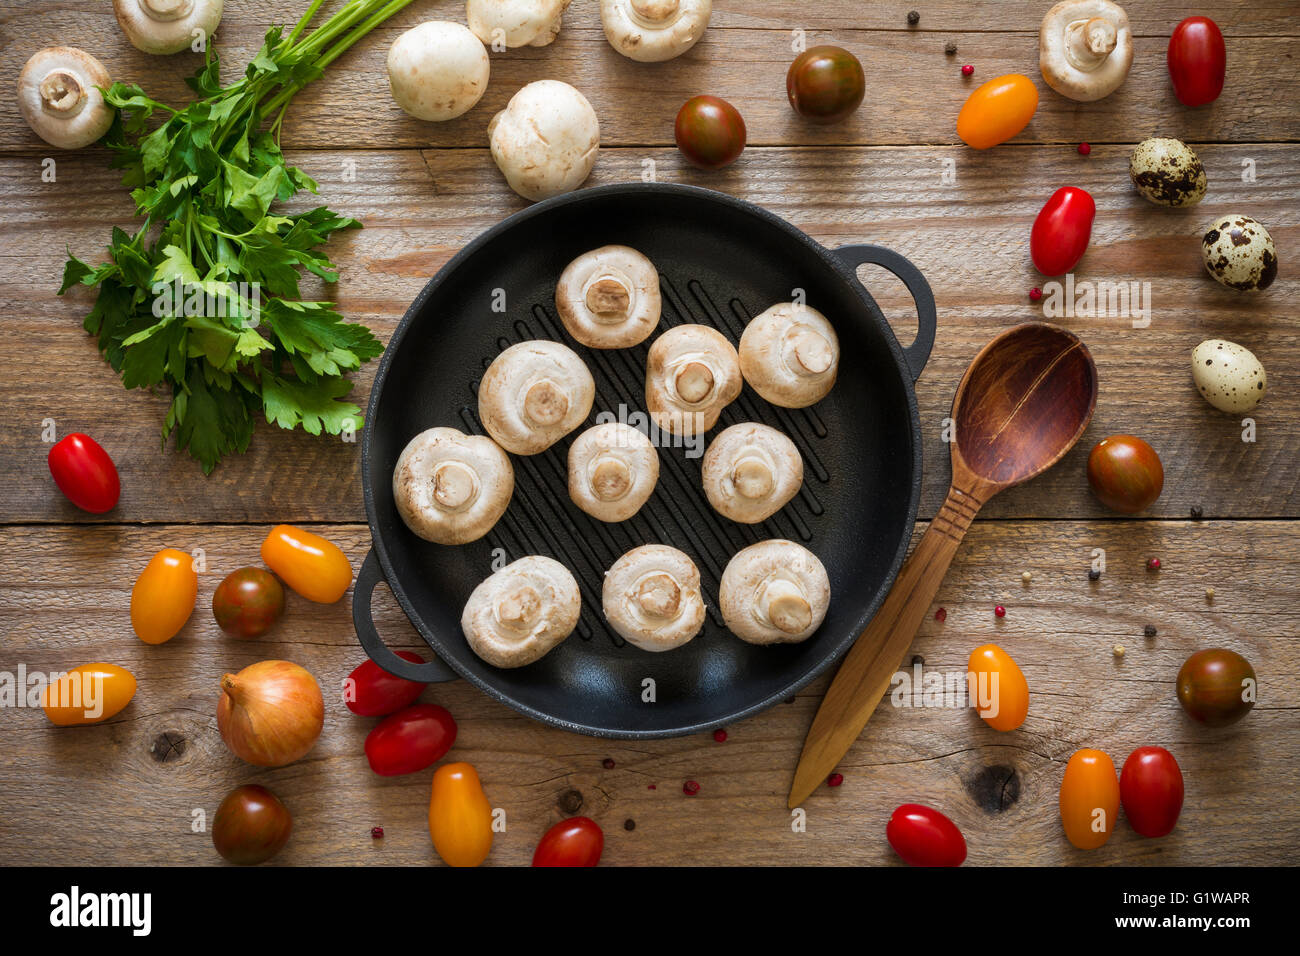 Food background: healthy food ingredients for cooking on rustic wooden table, top vlew - Stock Image